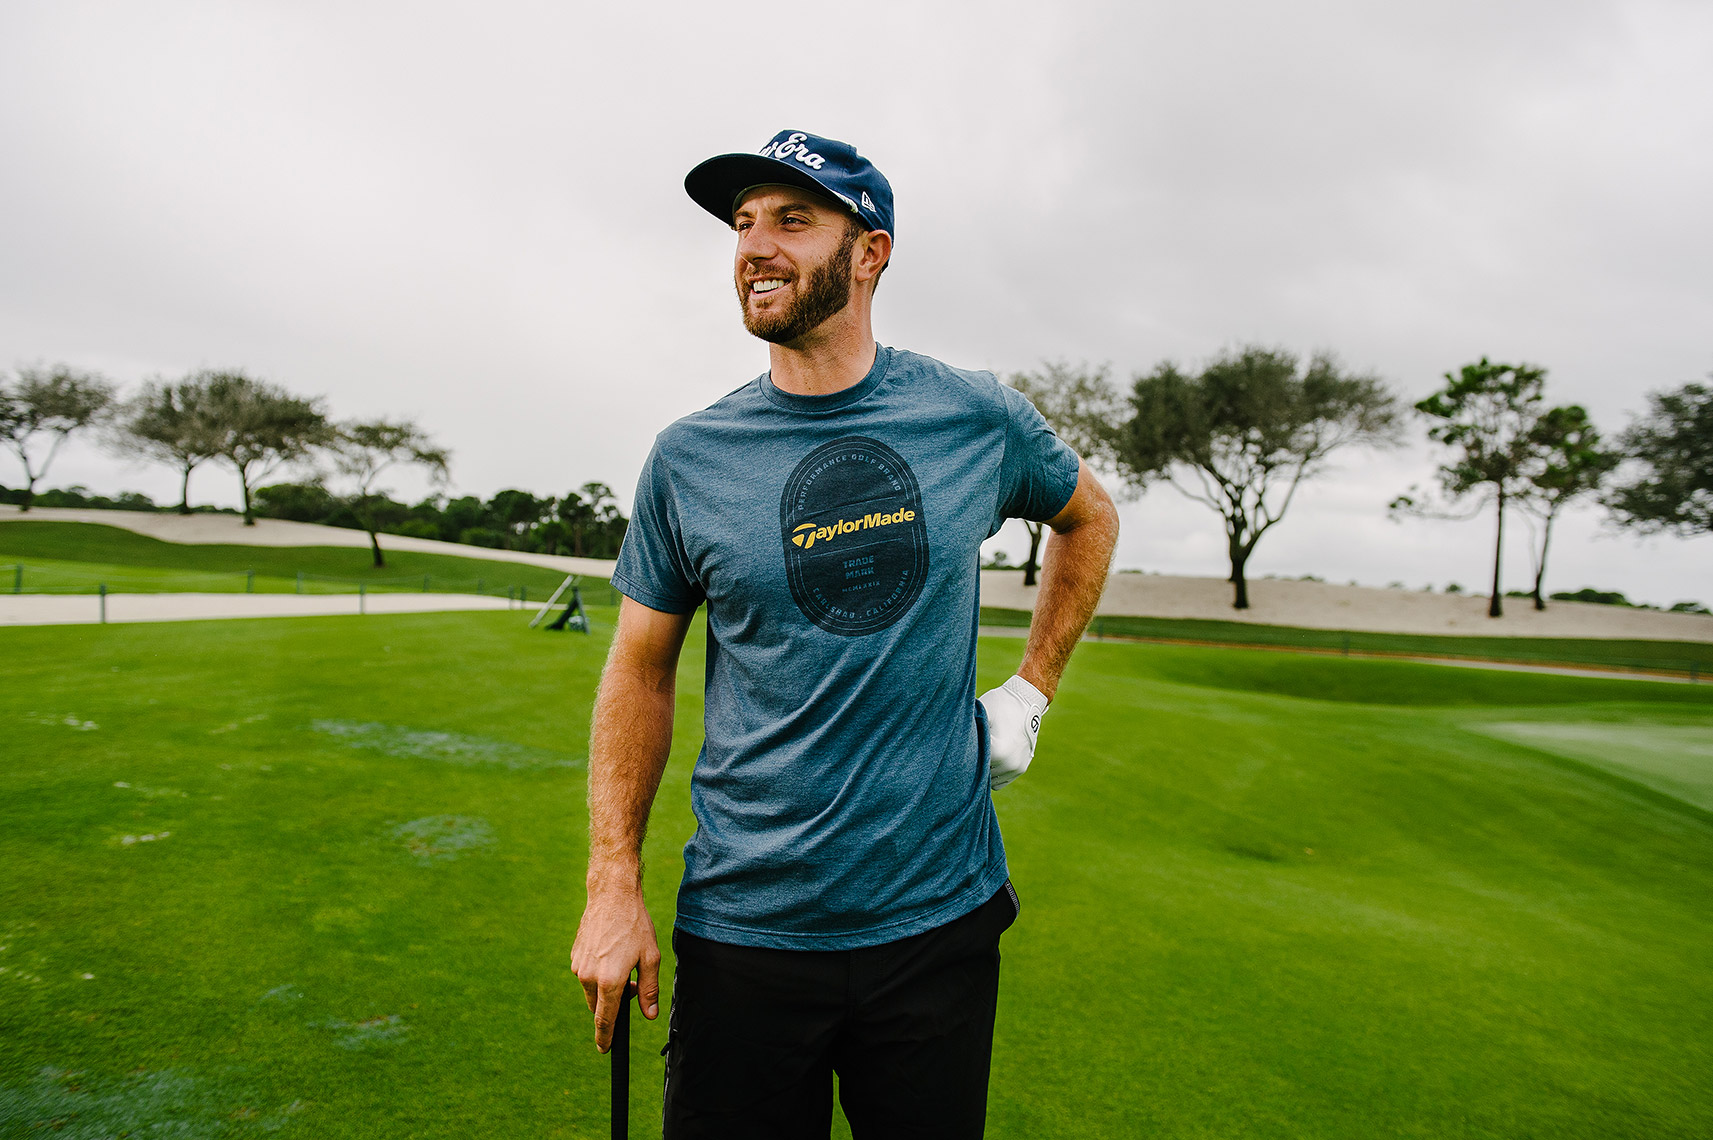 new-era-caps-john-schnack-photography-commercial-sports-photographer-san-diego-los-angeles-dustin-johnson-palm-beach-golf-photo-shoot-11